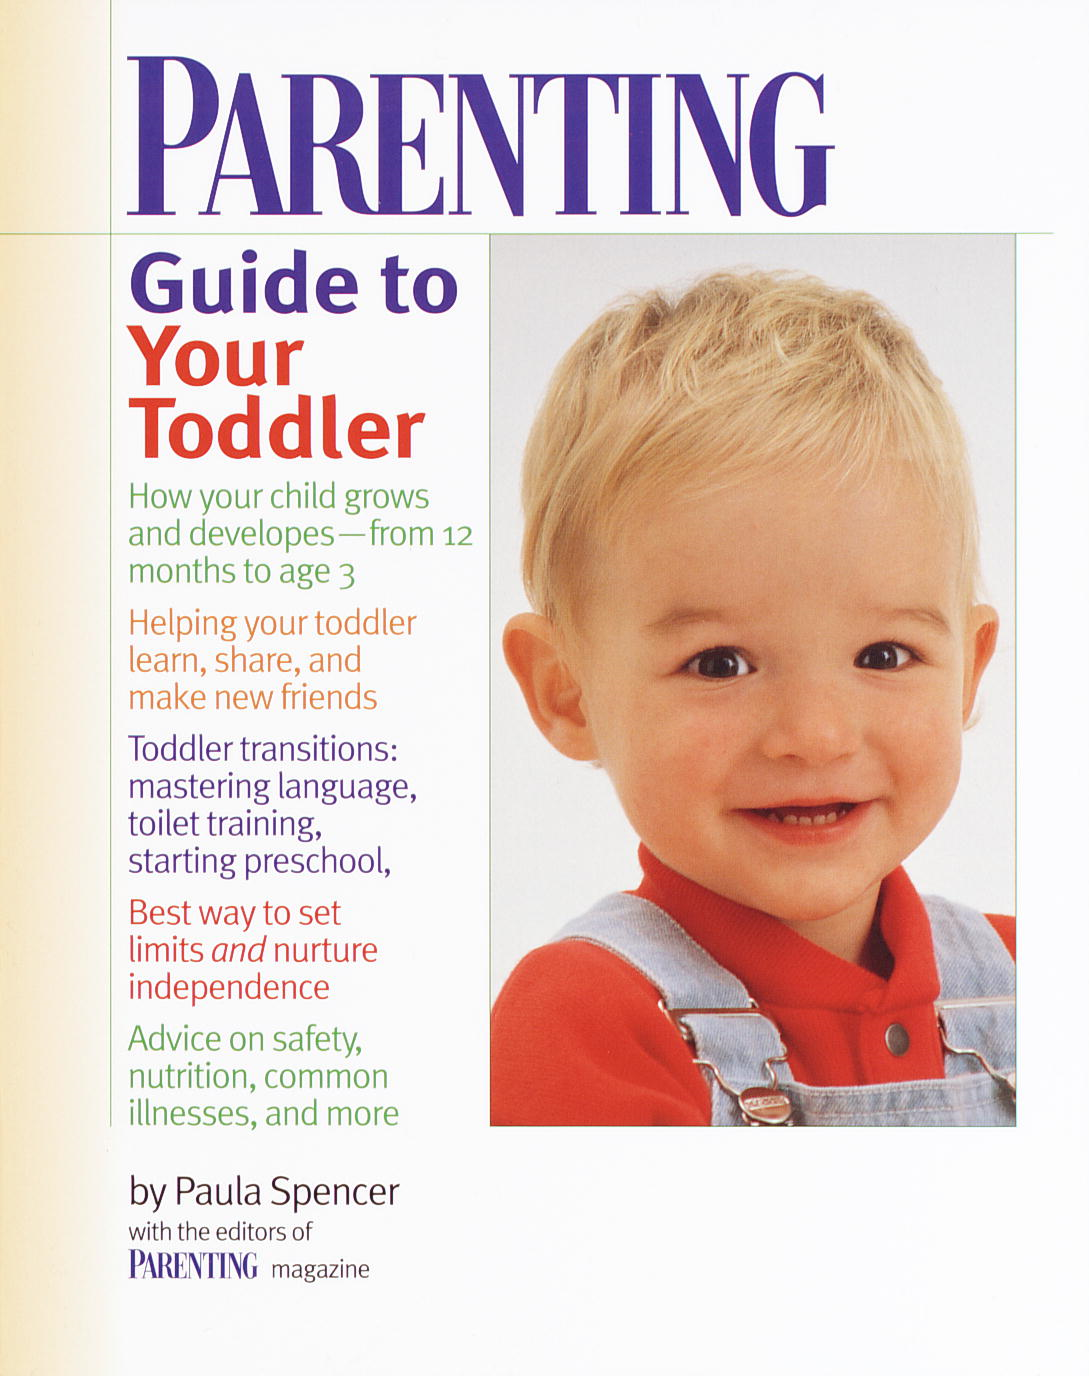 Parenting Guide to Your Toddler